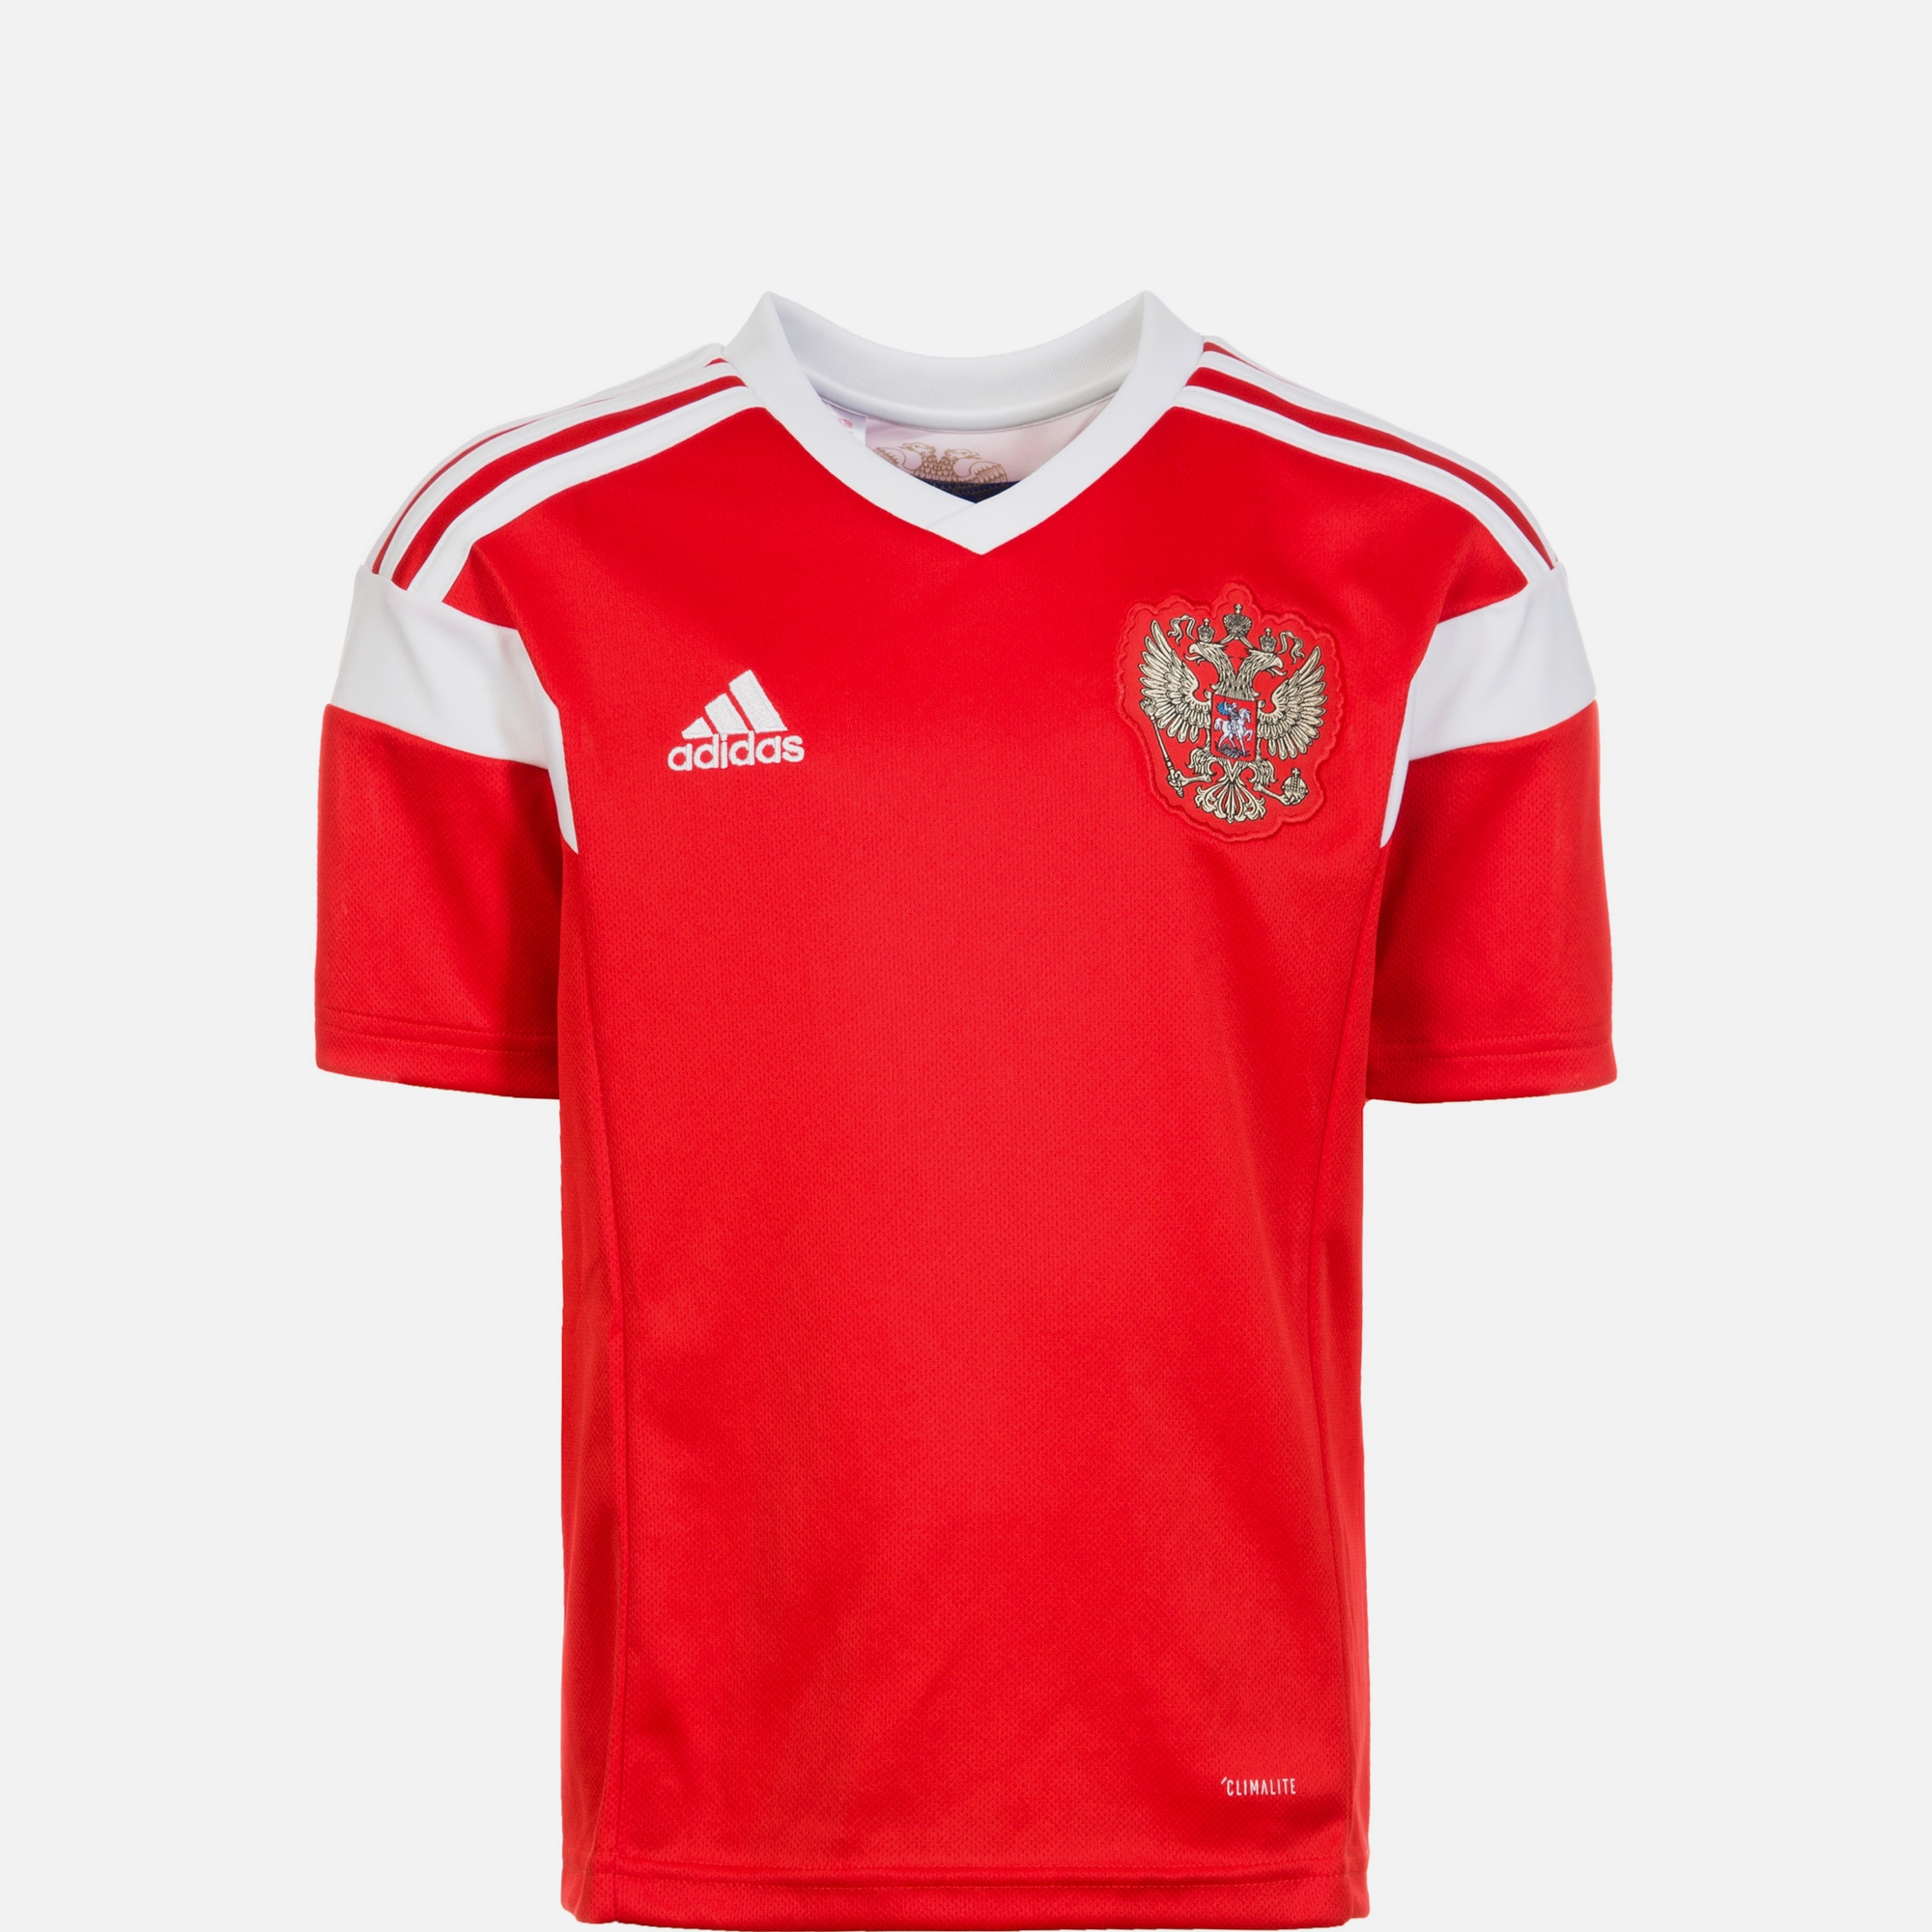 adidas performance rfu russland trikot home wm 2018 kinder. Black Bedroom Furniture Sets. Home Design Ideas